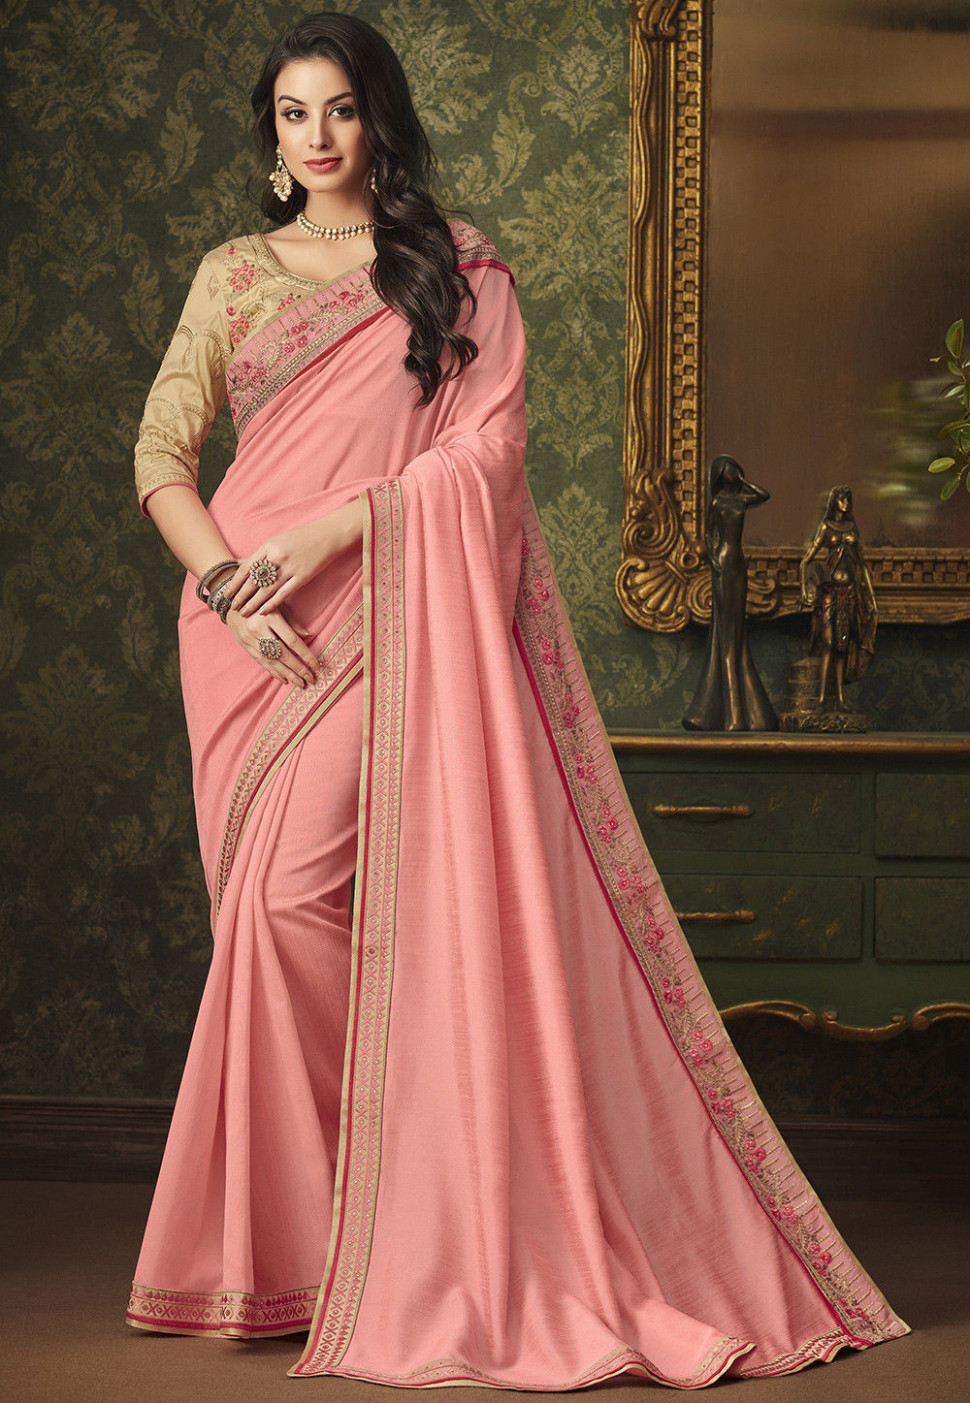 Embroidered Border Art Silk Saree in Light Pink : SSF6707